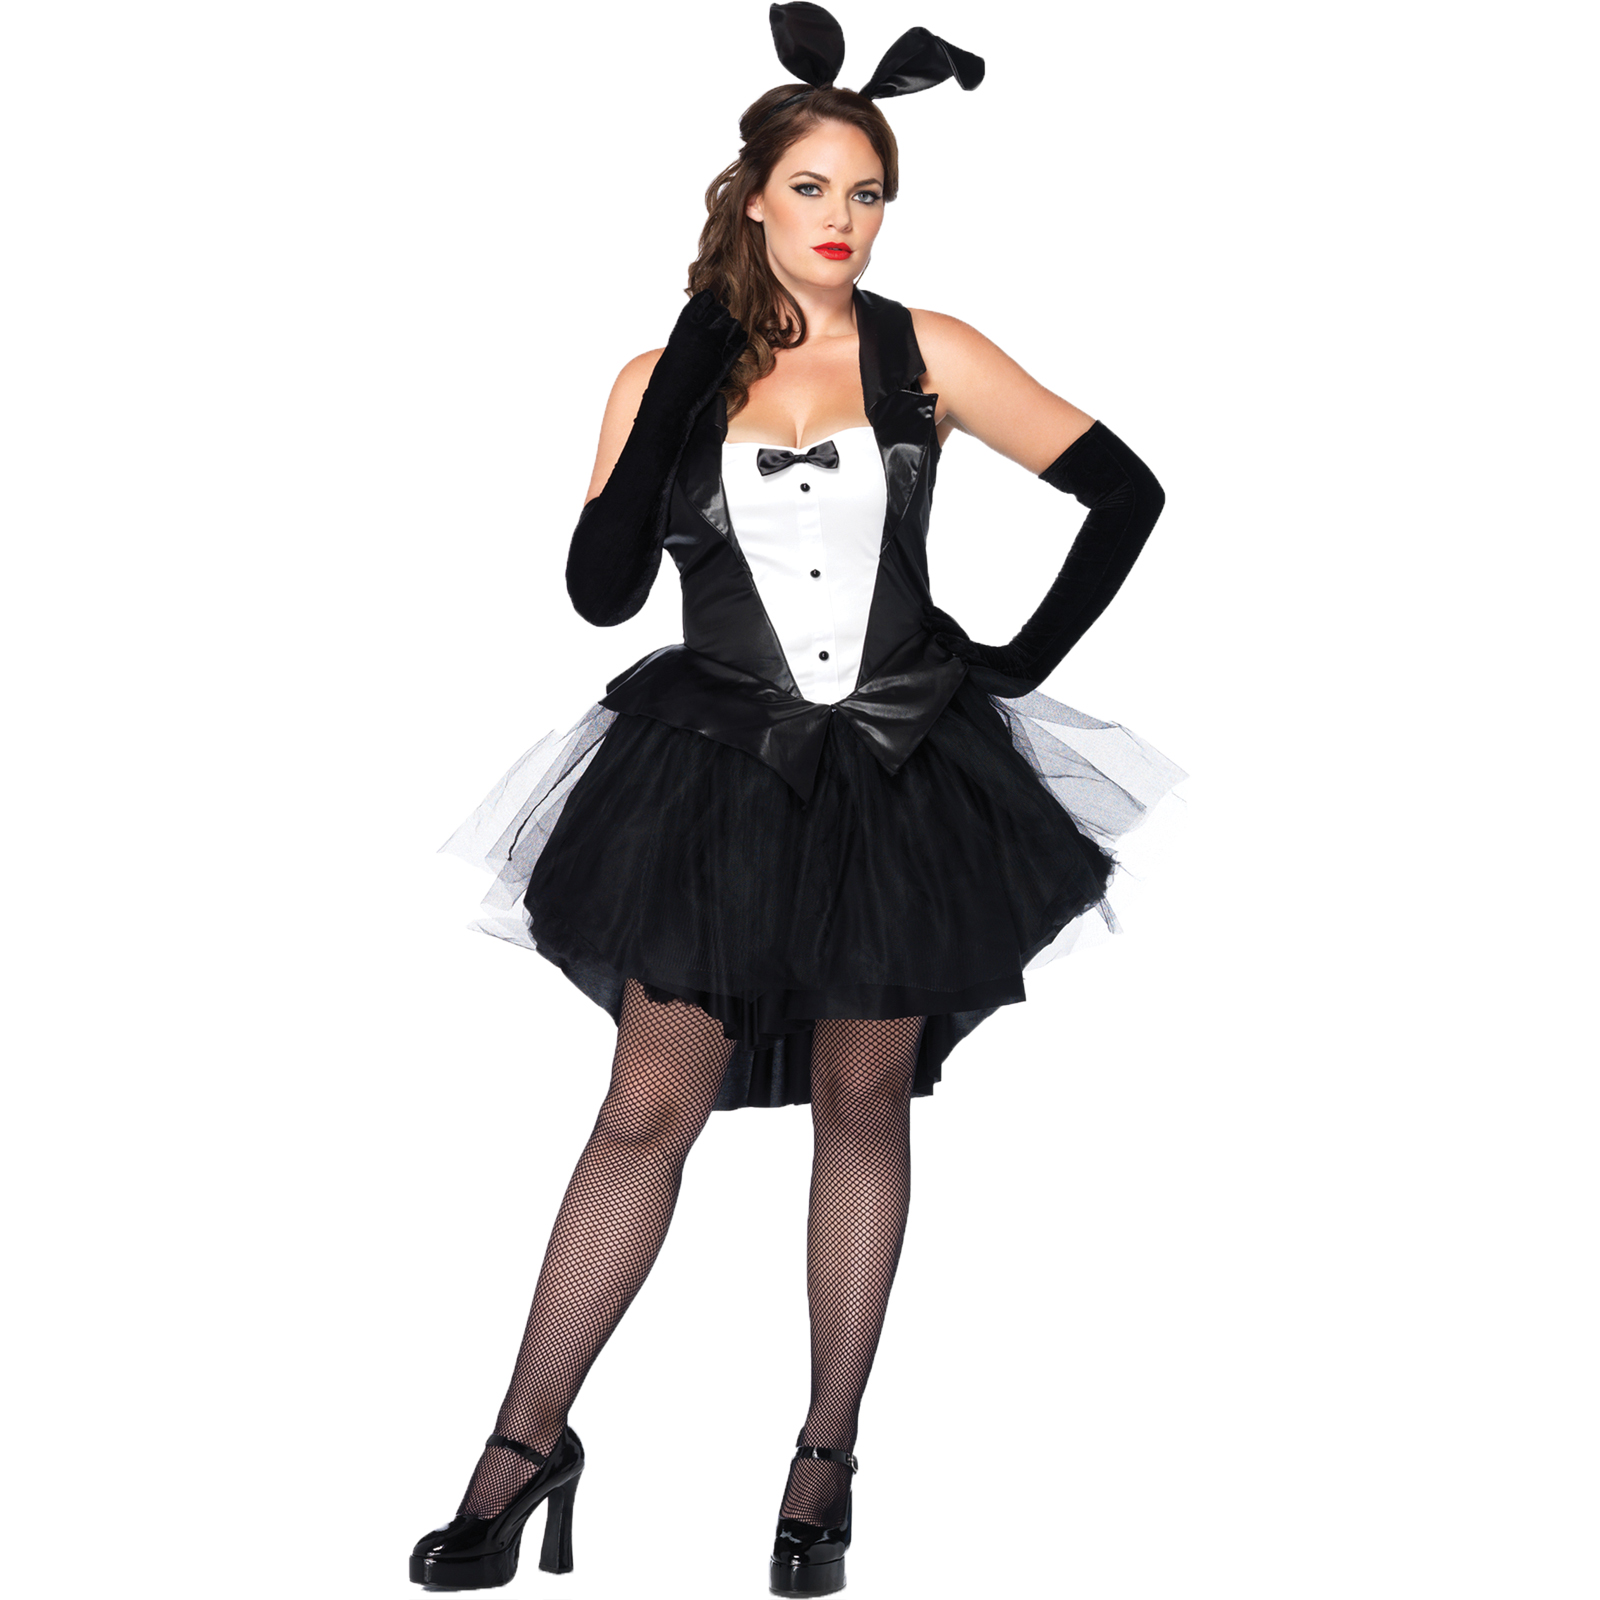 Women Bunny Tux Dress With Tails Costume Size Xxl